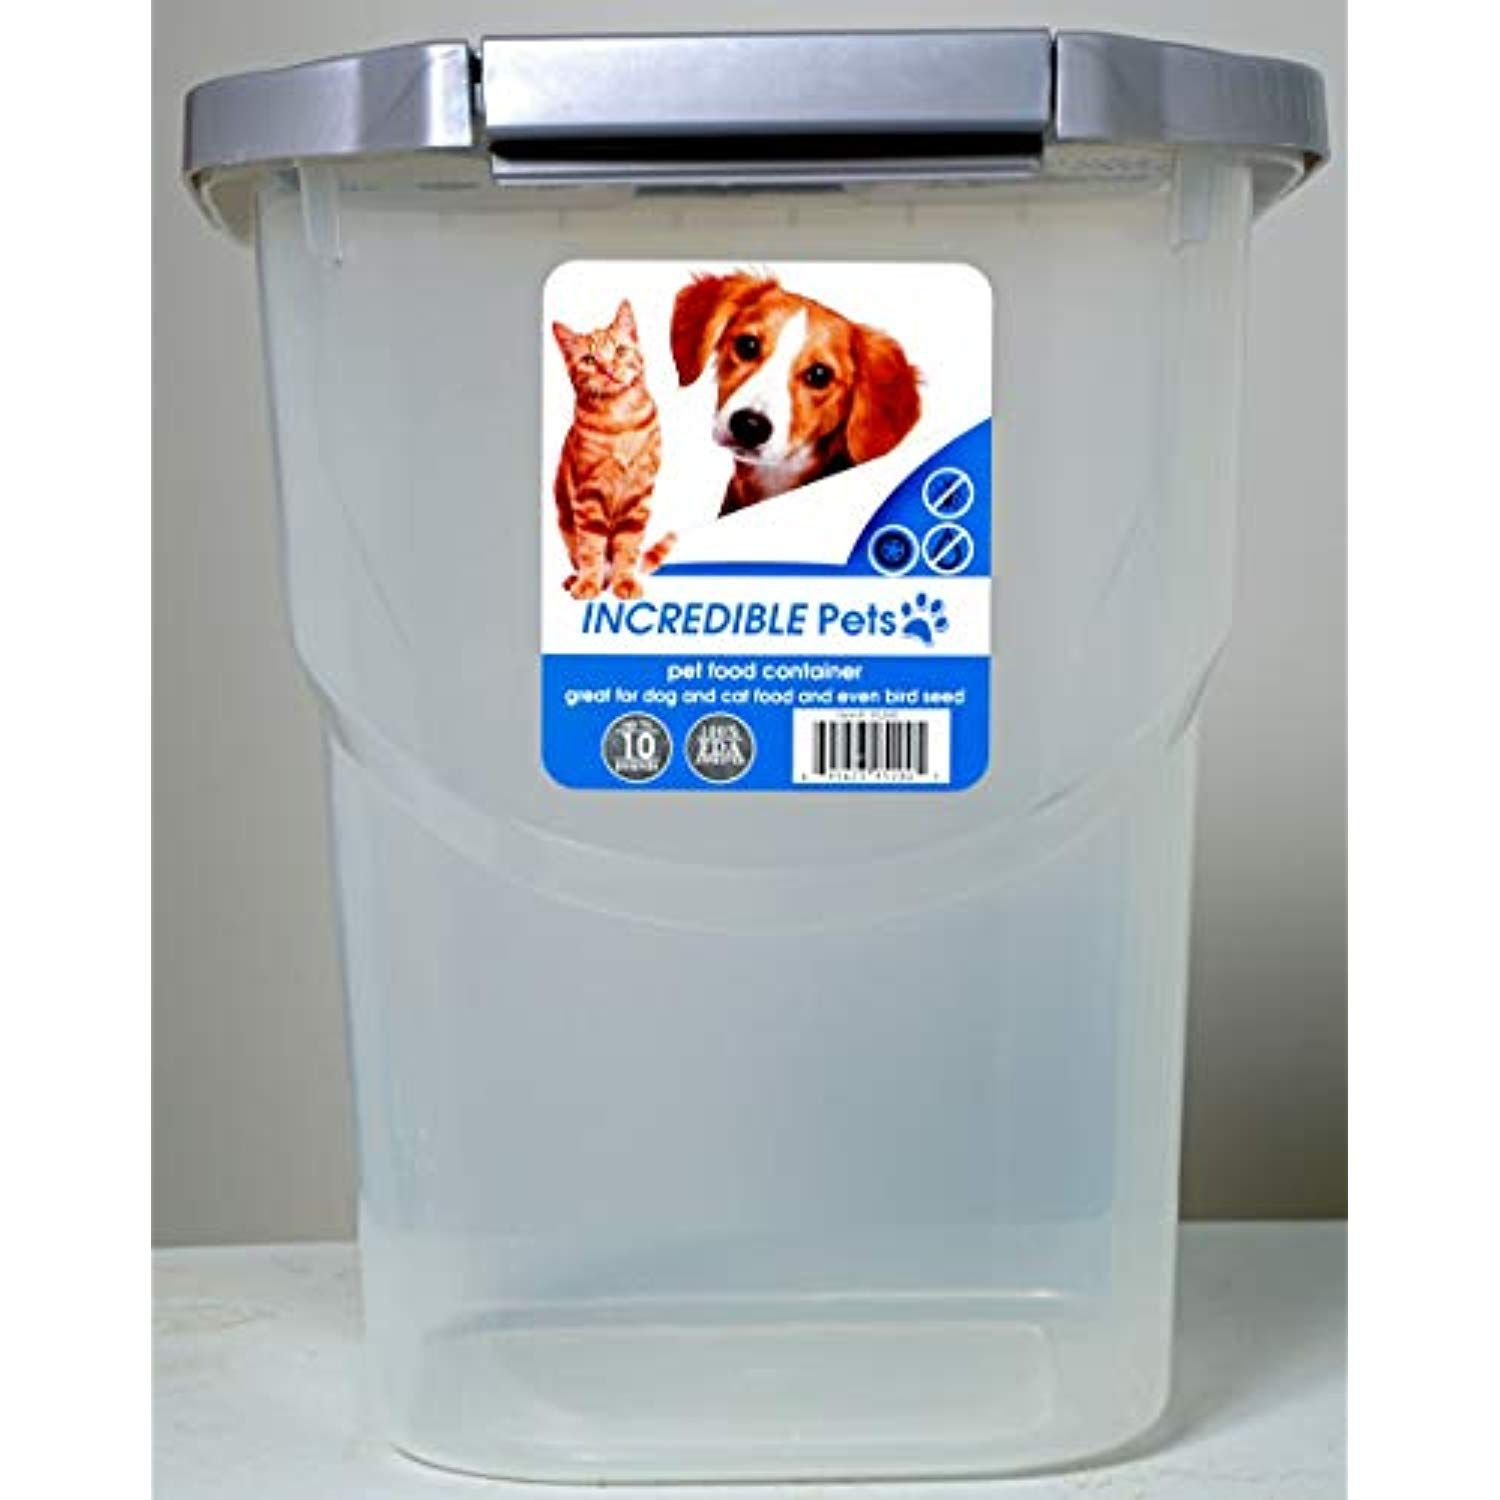 Incredible Solutions 95200 Pet Food 10 Lb Want To Know More Click On The Image Airtight Pet Food Storage Pet Food Storage Container Pet Food Container